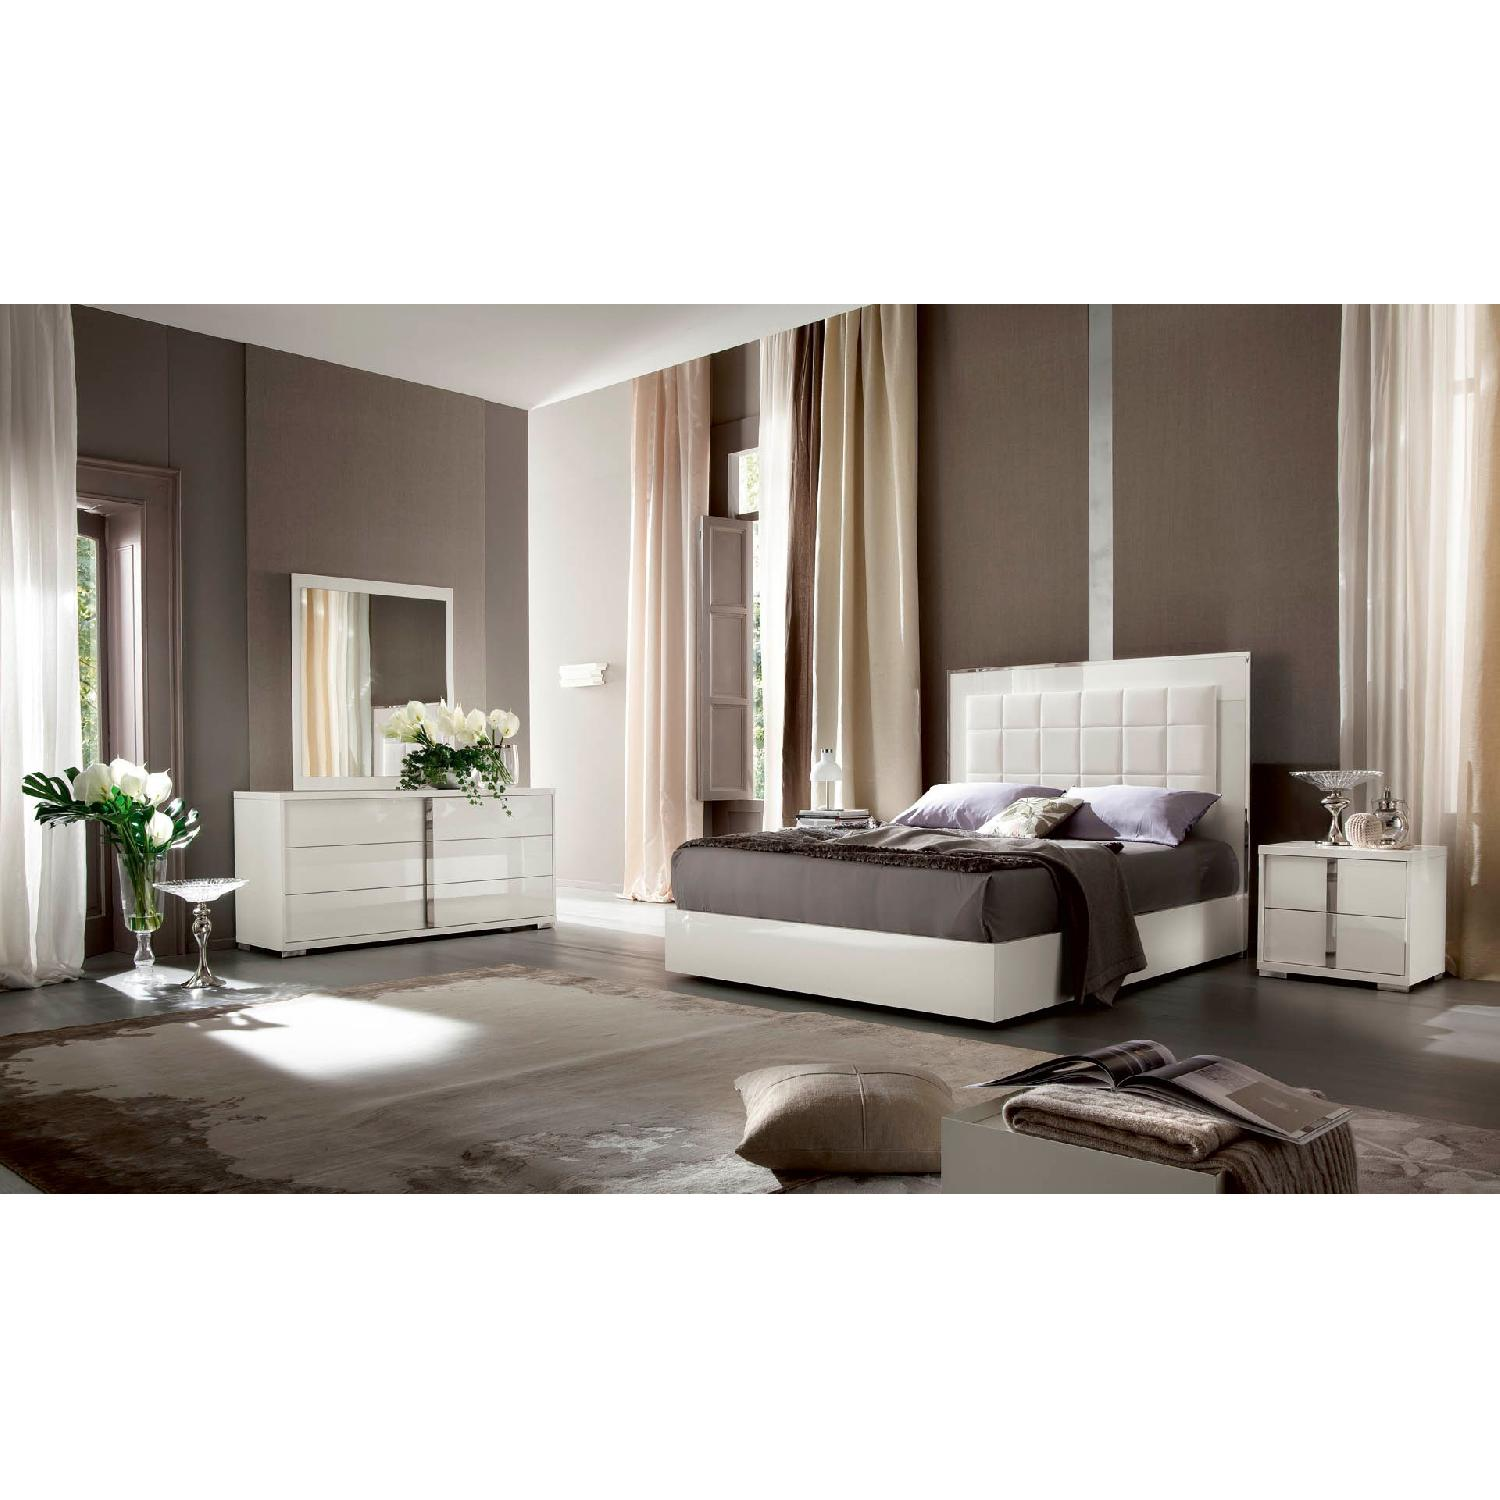 Alf Imperia King Size Bed-4